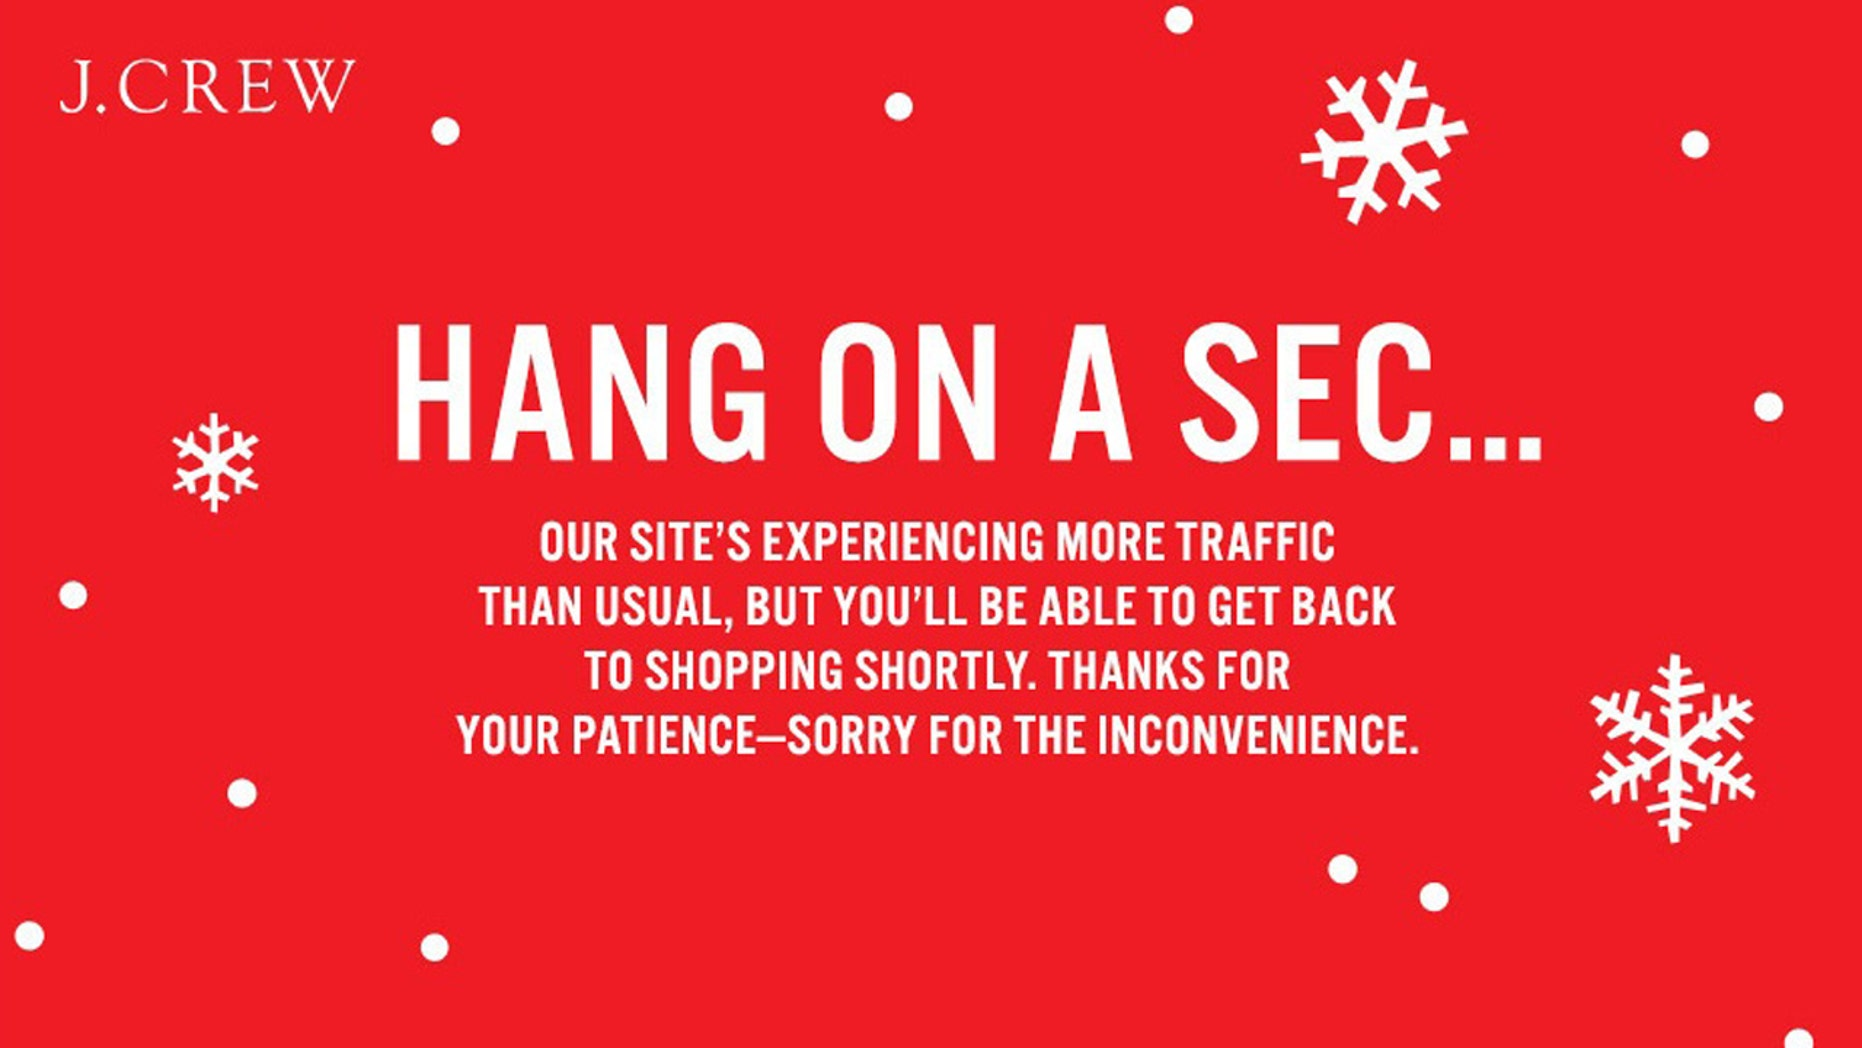 This error message was seen on J.Crew's website Friday as shoppers flocked online to save with Black Friday deals.